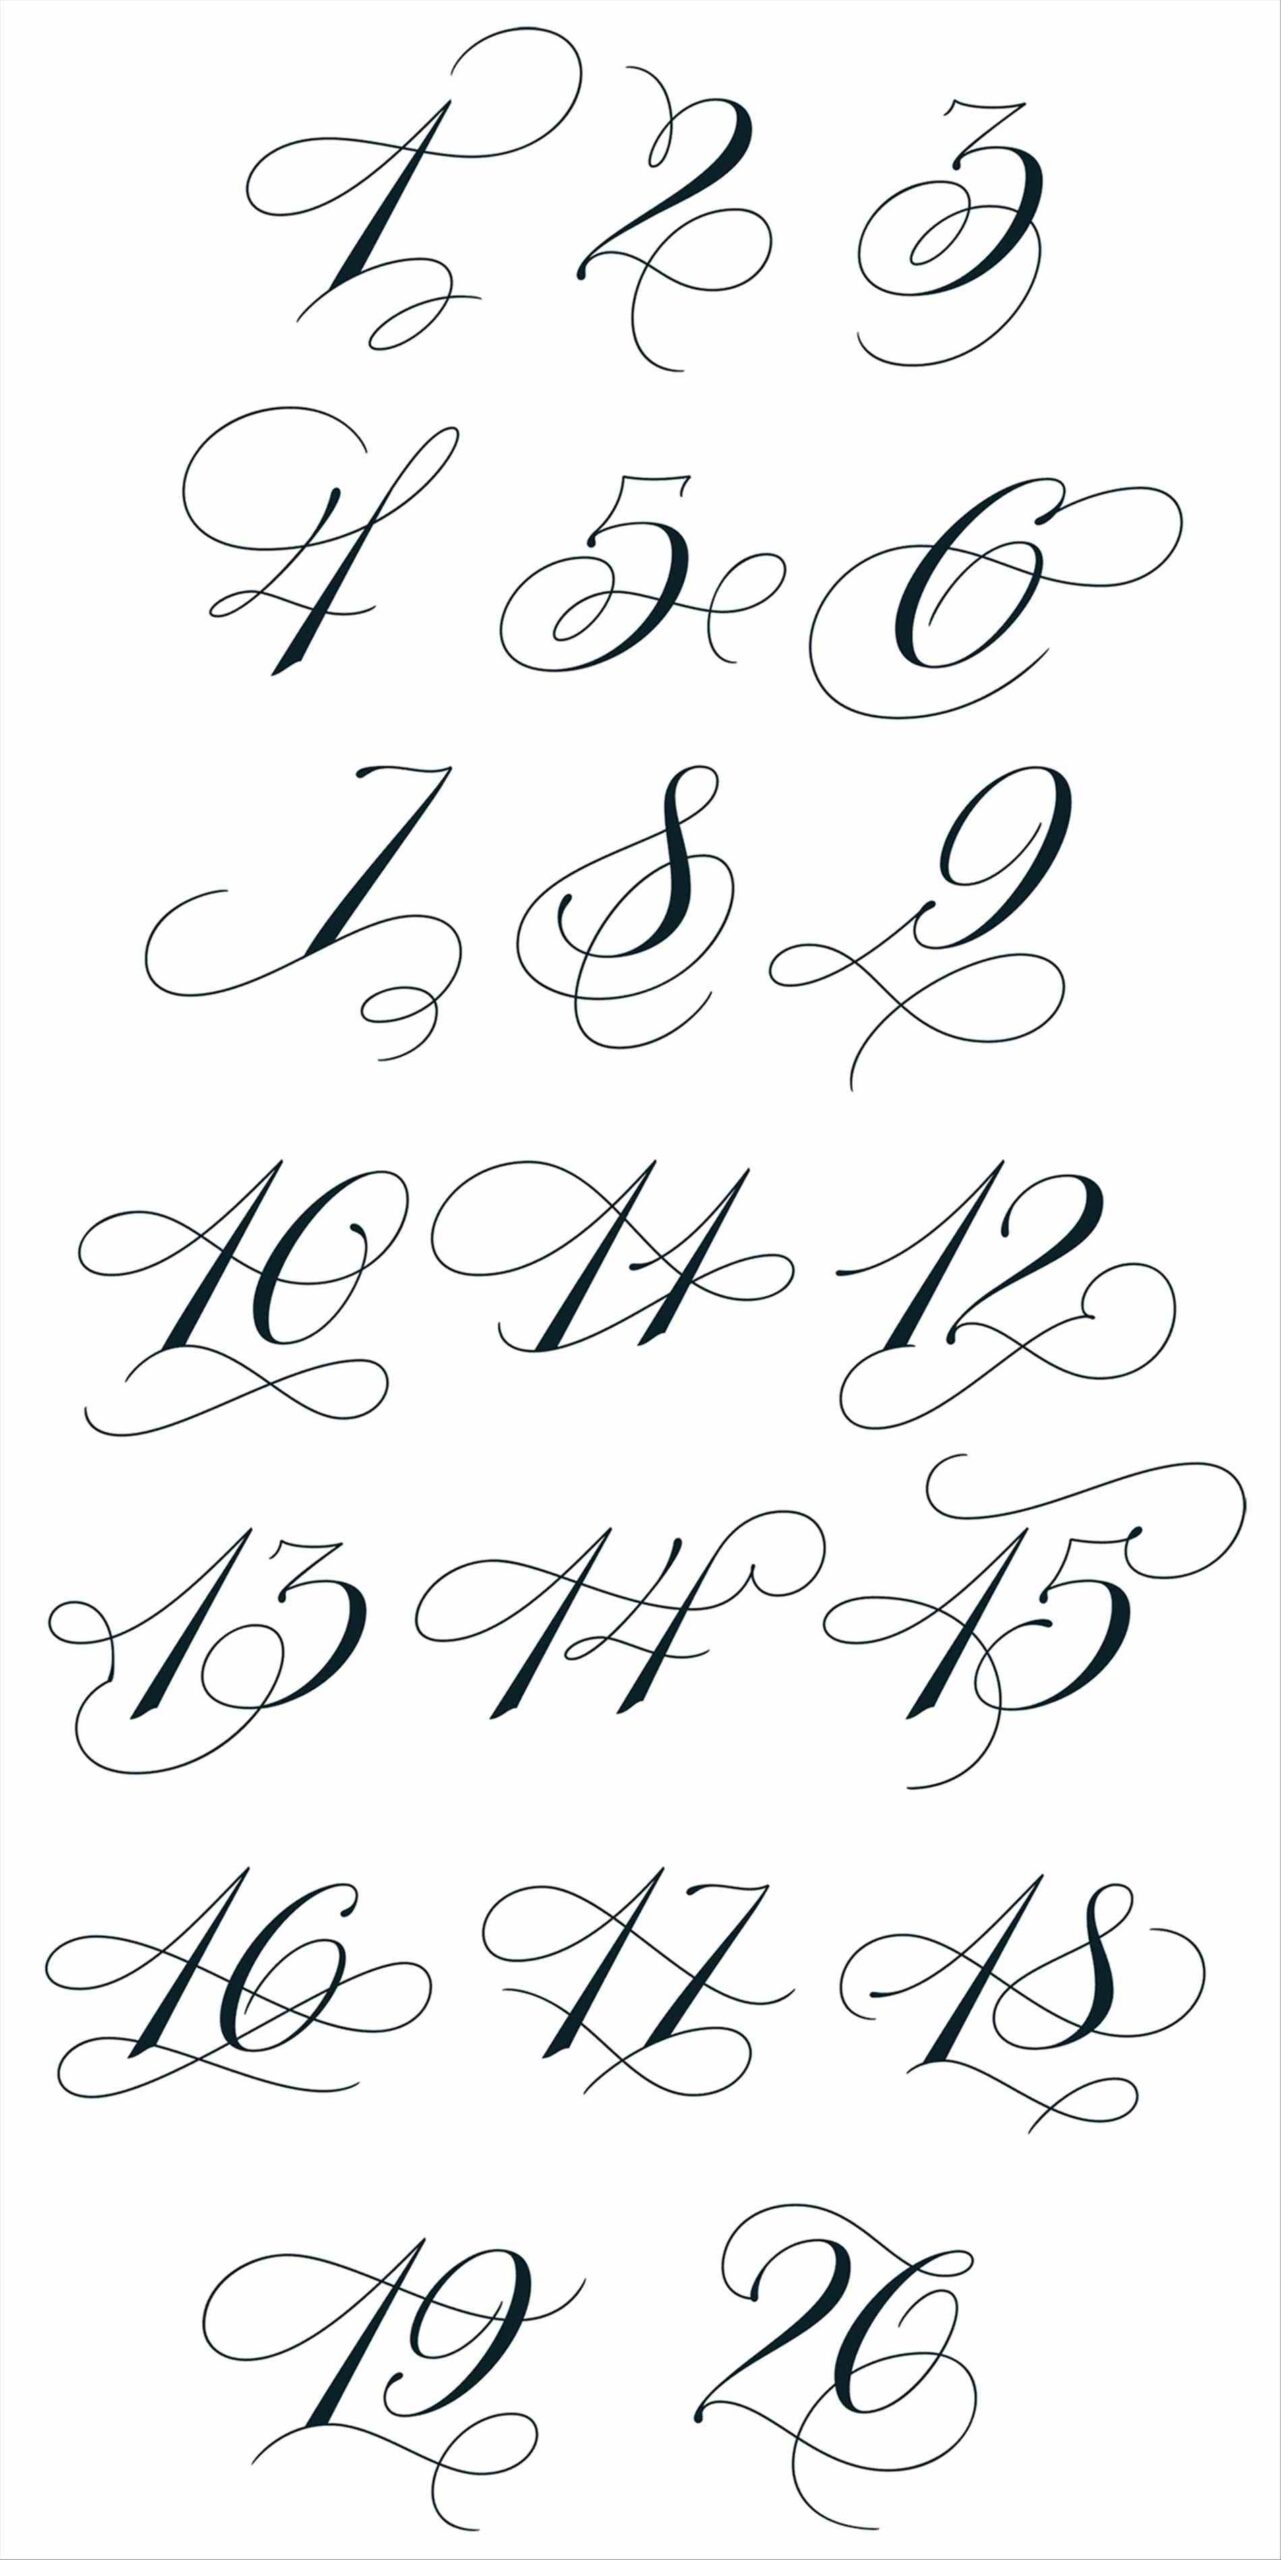 Different Font Tattoos Free Cursive Handwriting Generator